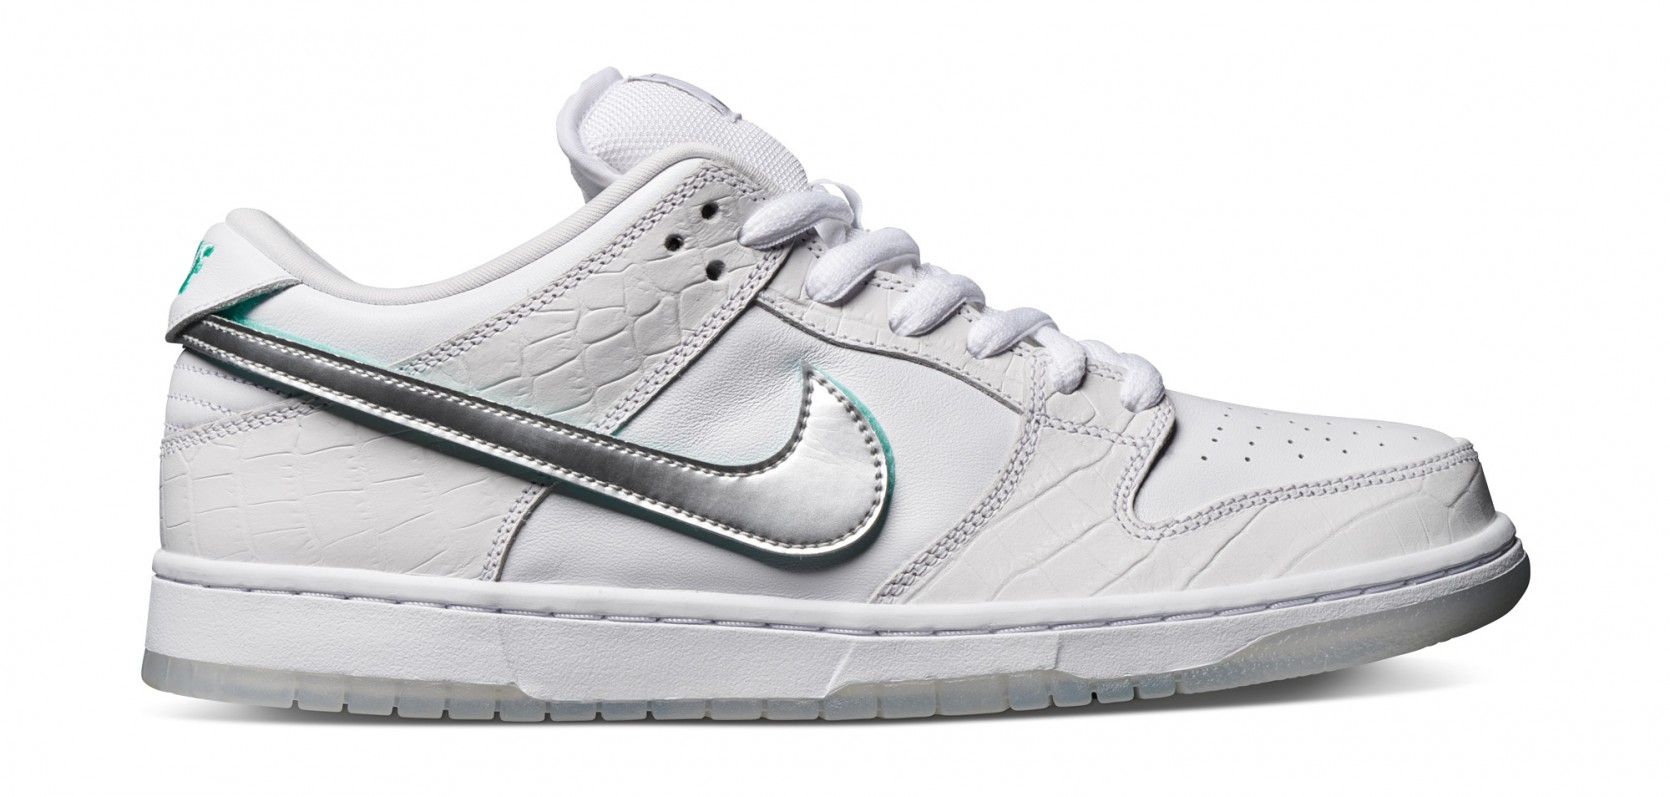 Exclusive Sneakers You Can Only Get at